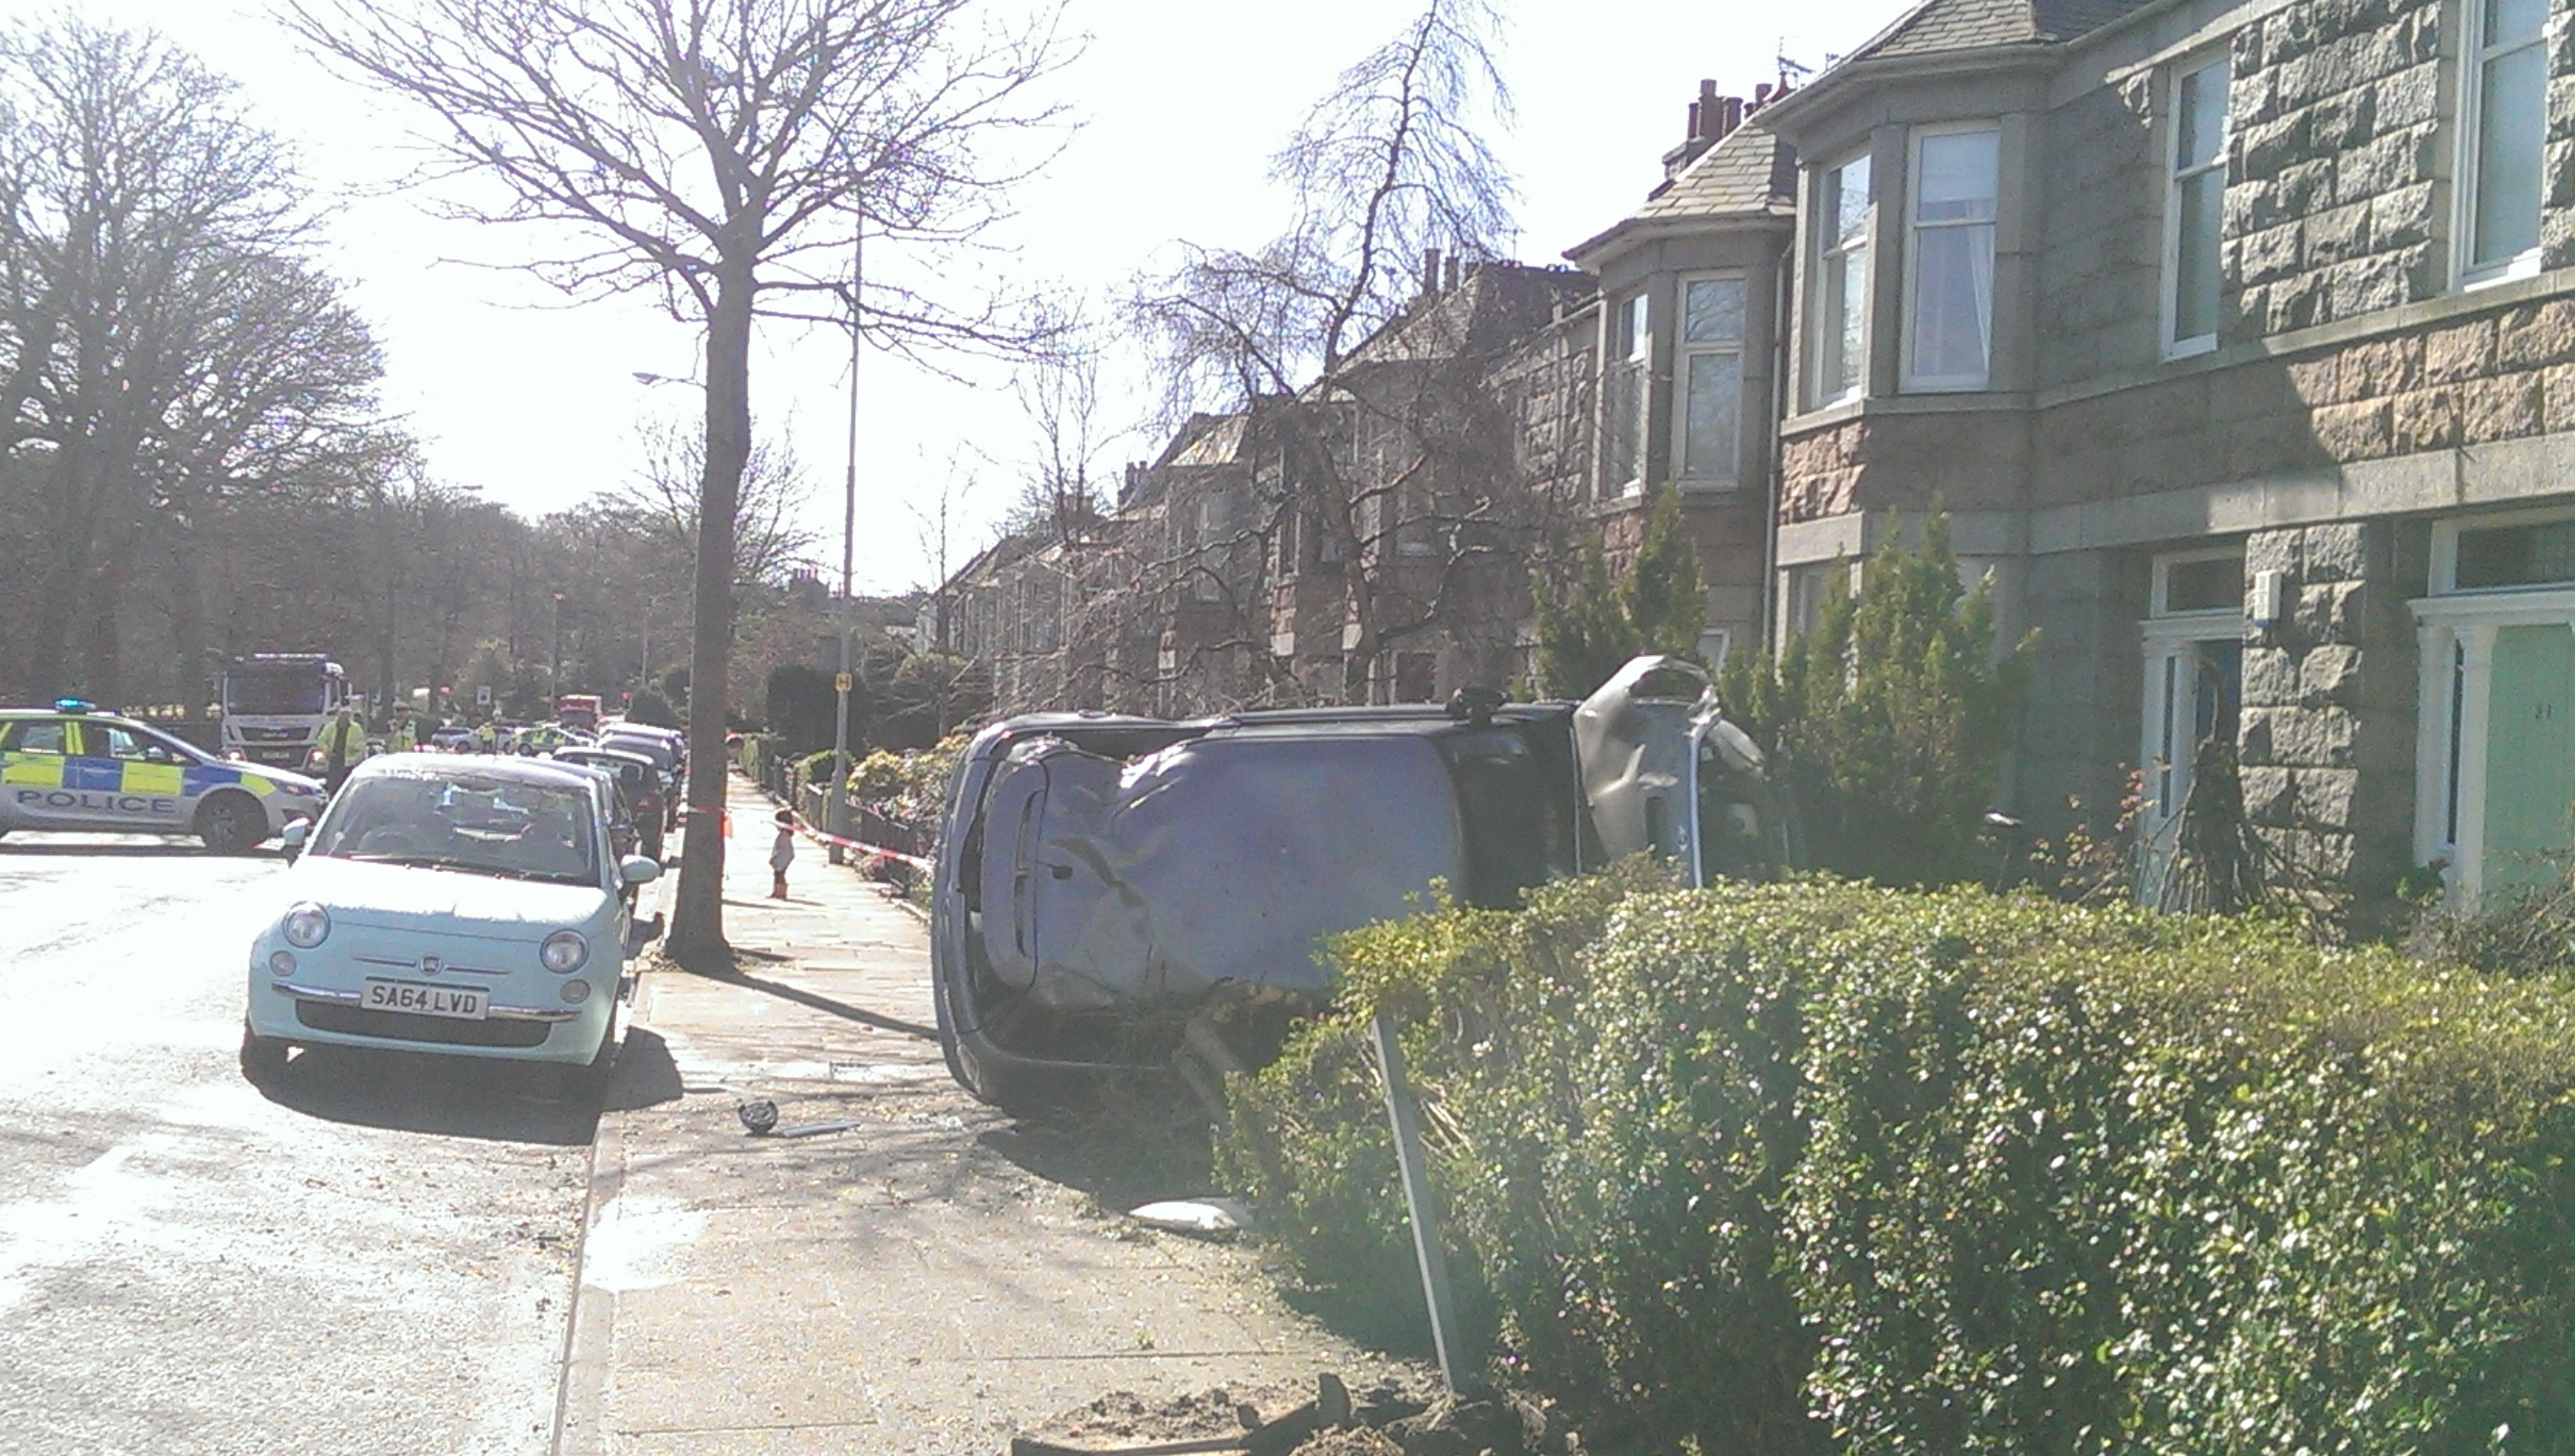 The car on its side on Westburn Drive. Credit: Martin Little.